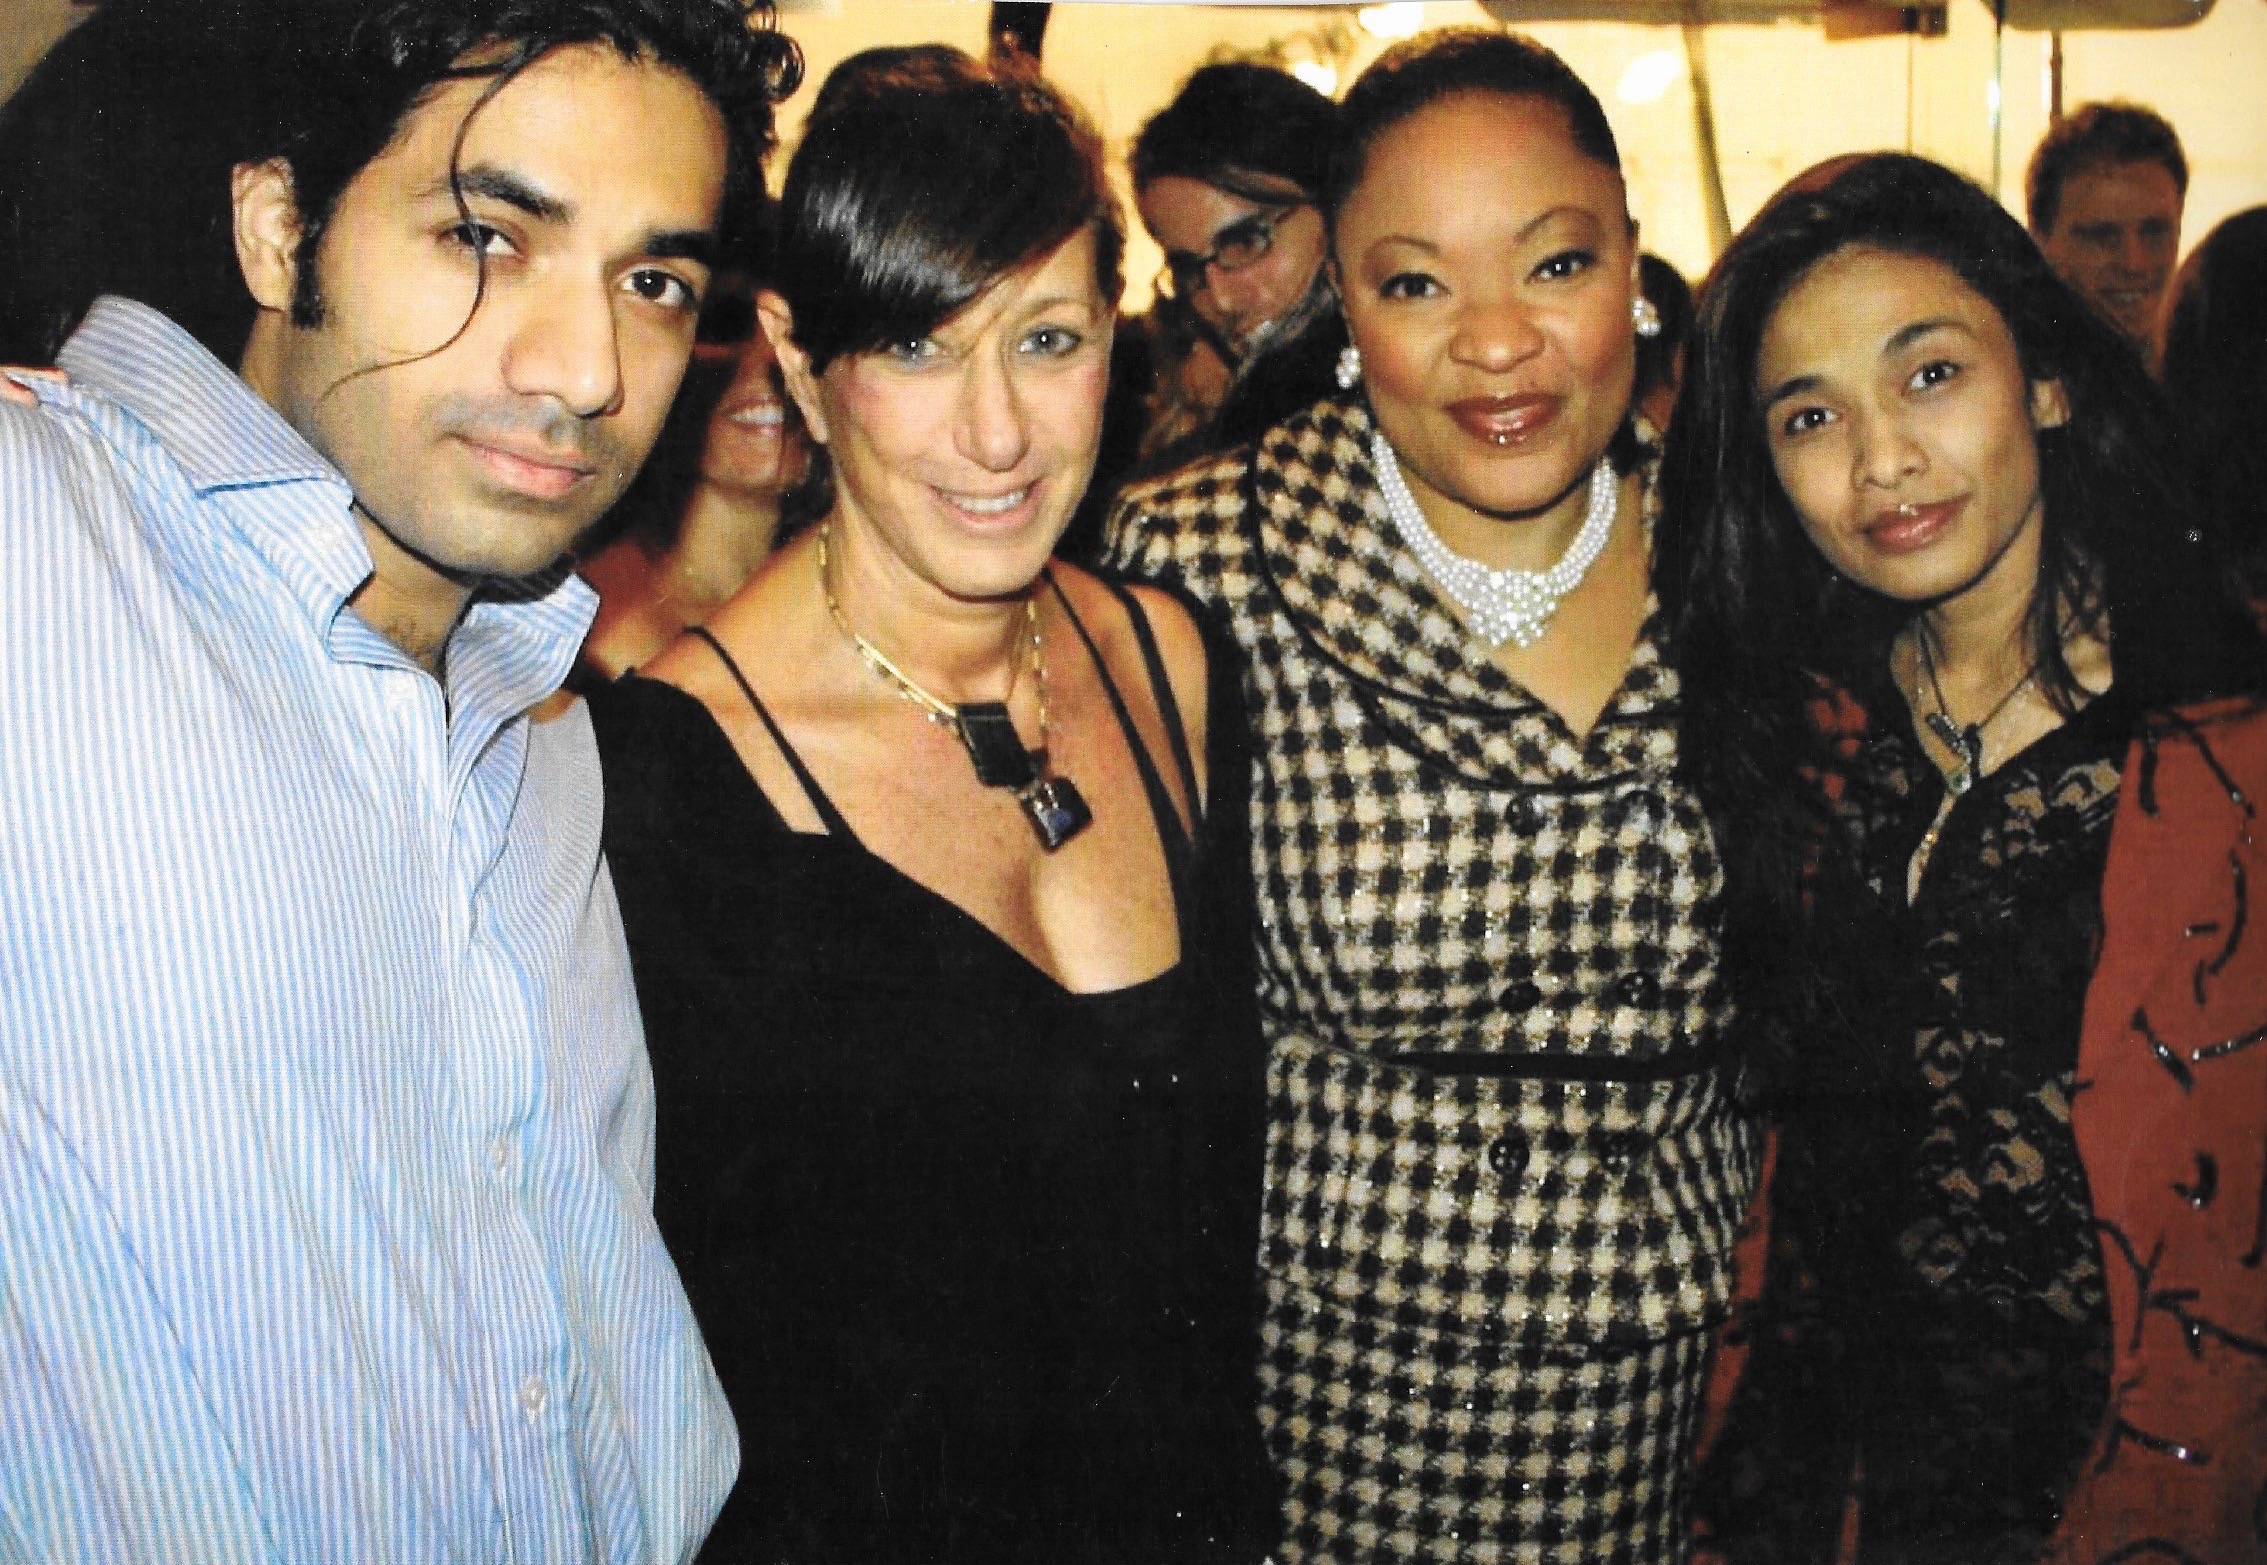 Anand Jon with fashion designer Donna Karan, Cathy Jones, and elder sister Sanjana Jon. (Anand Jon)